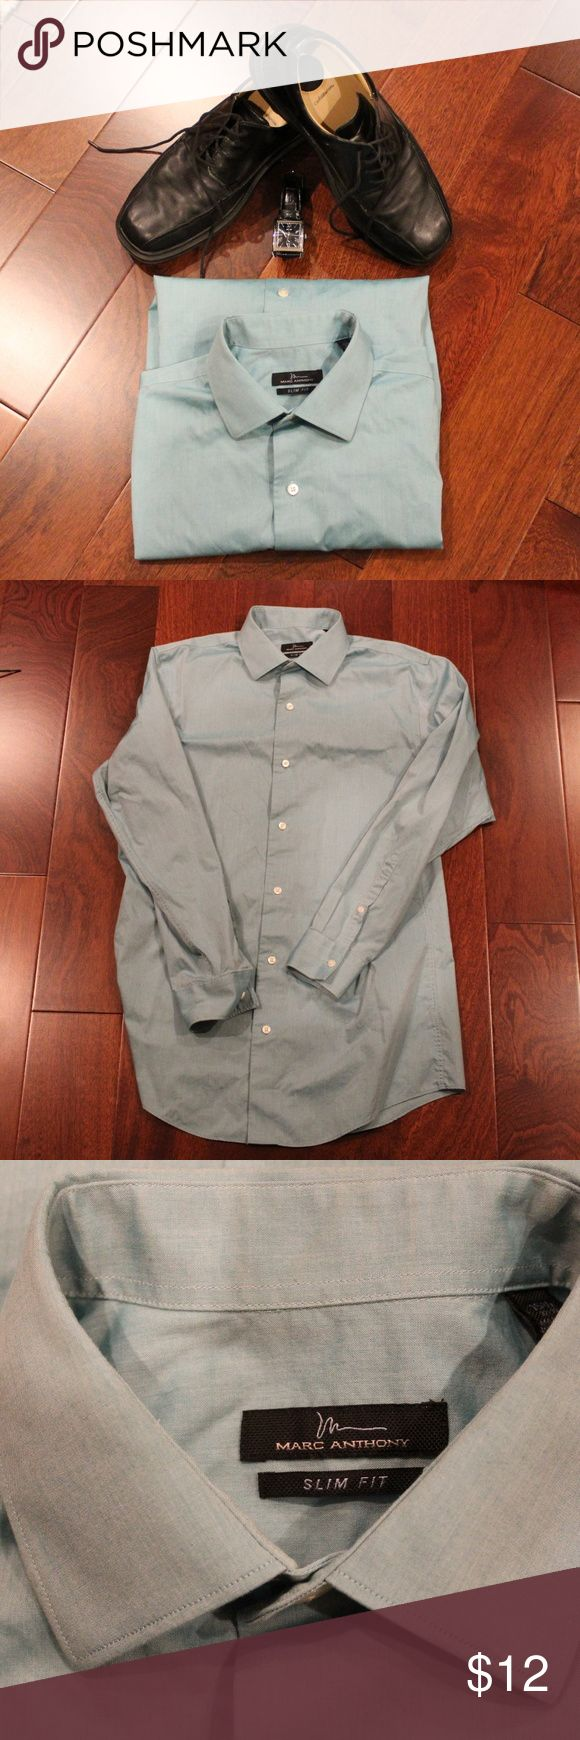 Marc Anthony Dress Shirt The Marc Anthony Slim Fit dress shirt brings a contemporary flare to any closet. The fabric fights wrinkles all day long to keep you looking your best! The material is also light weight and breathable to keep you comfortable. The teal color blends well with black or gray dress pants, and a patterned wide tie. Marc Anthony Shirts Dress Shirts